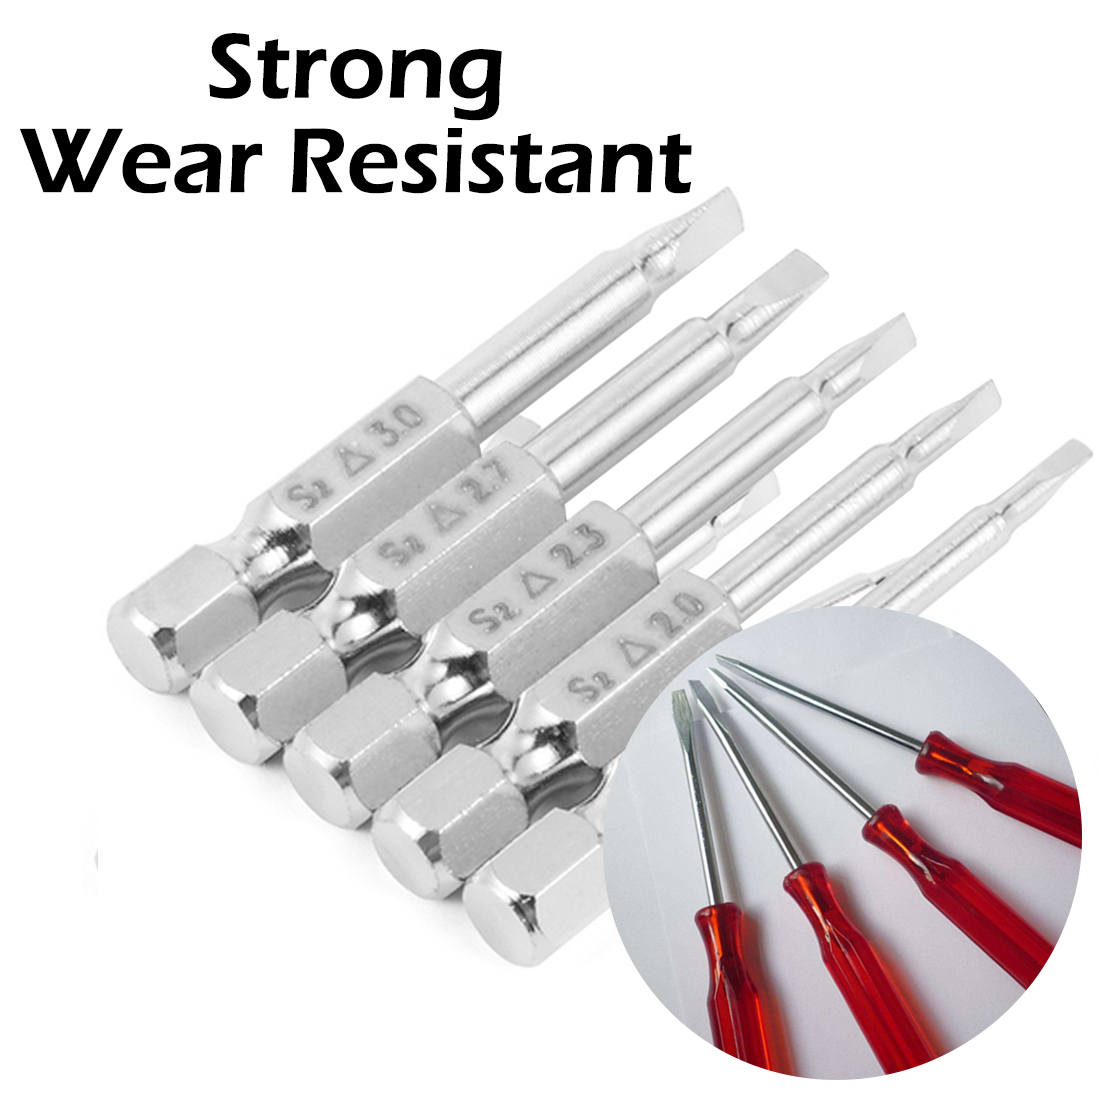 6 in 1 T Type Wrench Handle Screwdriver Bits Wrench Set Anti-Slip Precision Hex Triangle Ratchet Screwdriver 5Pcs Screw Bits Hand Tool